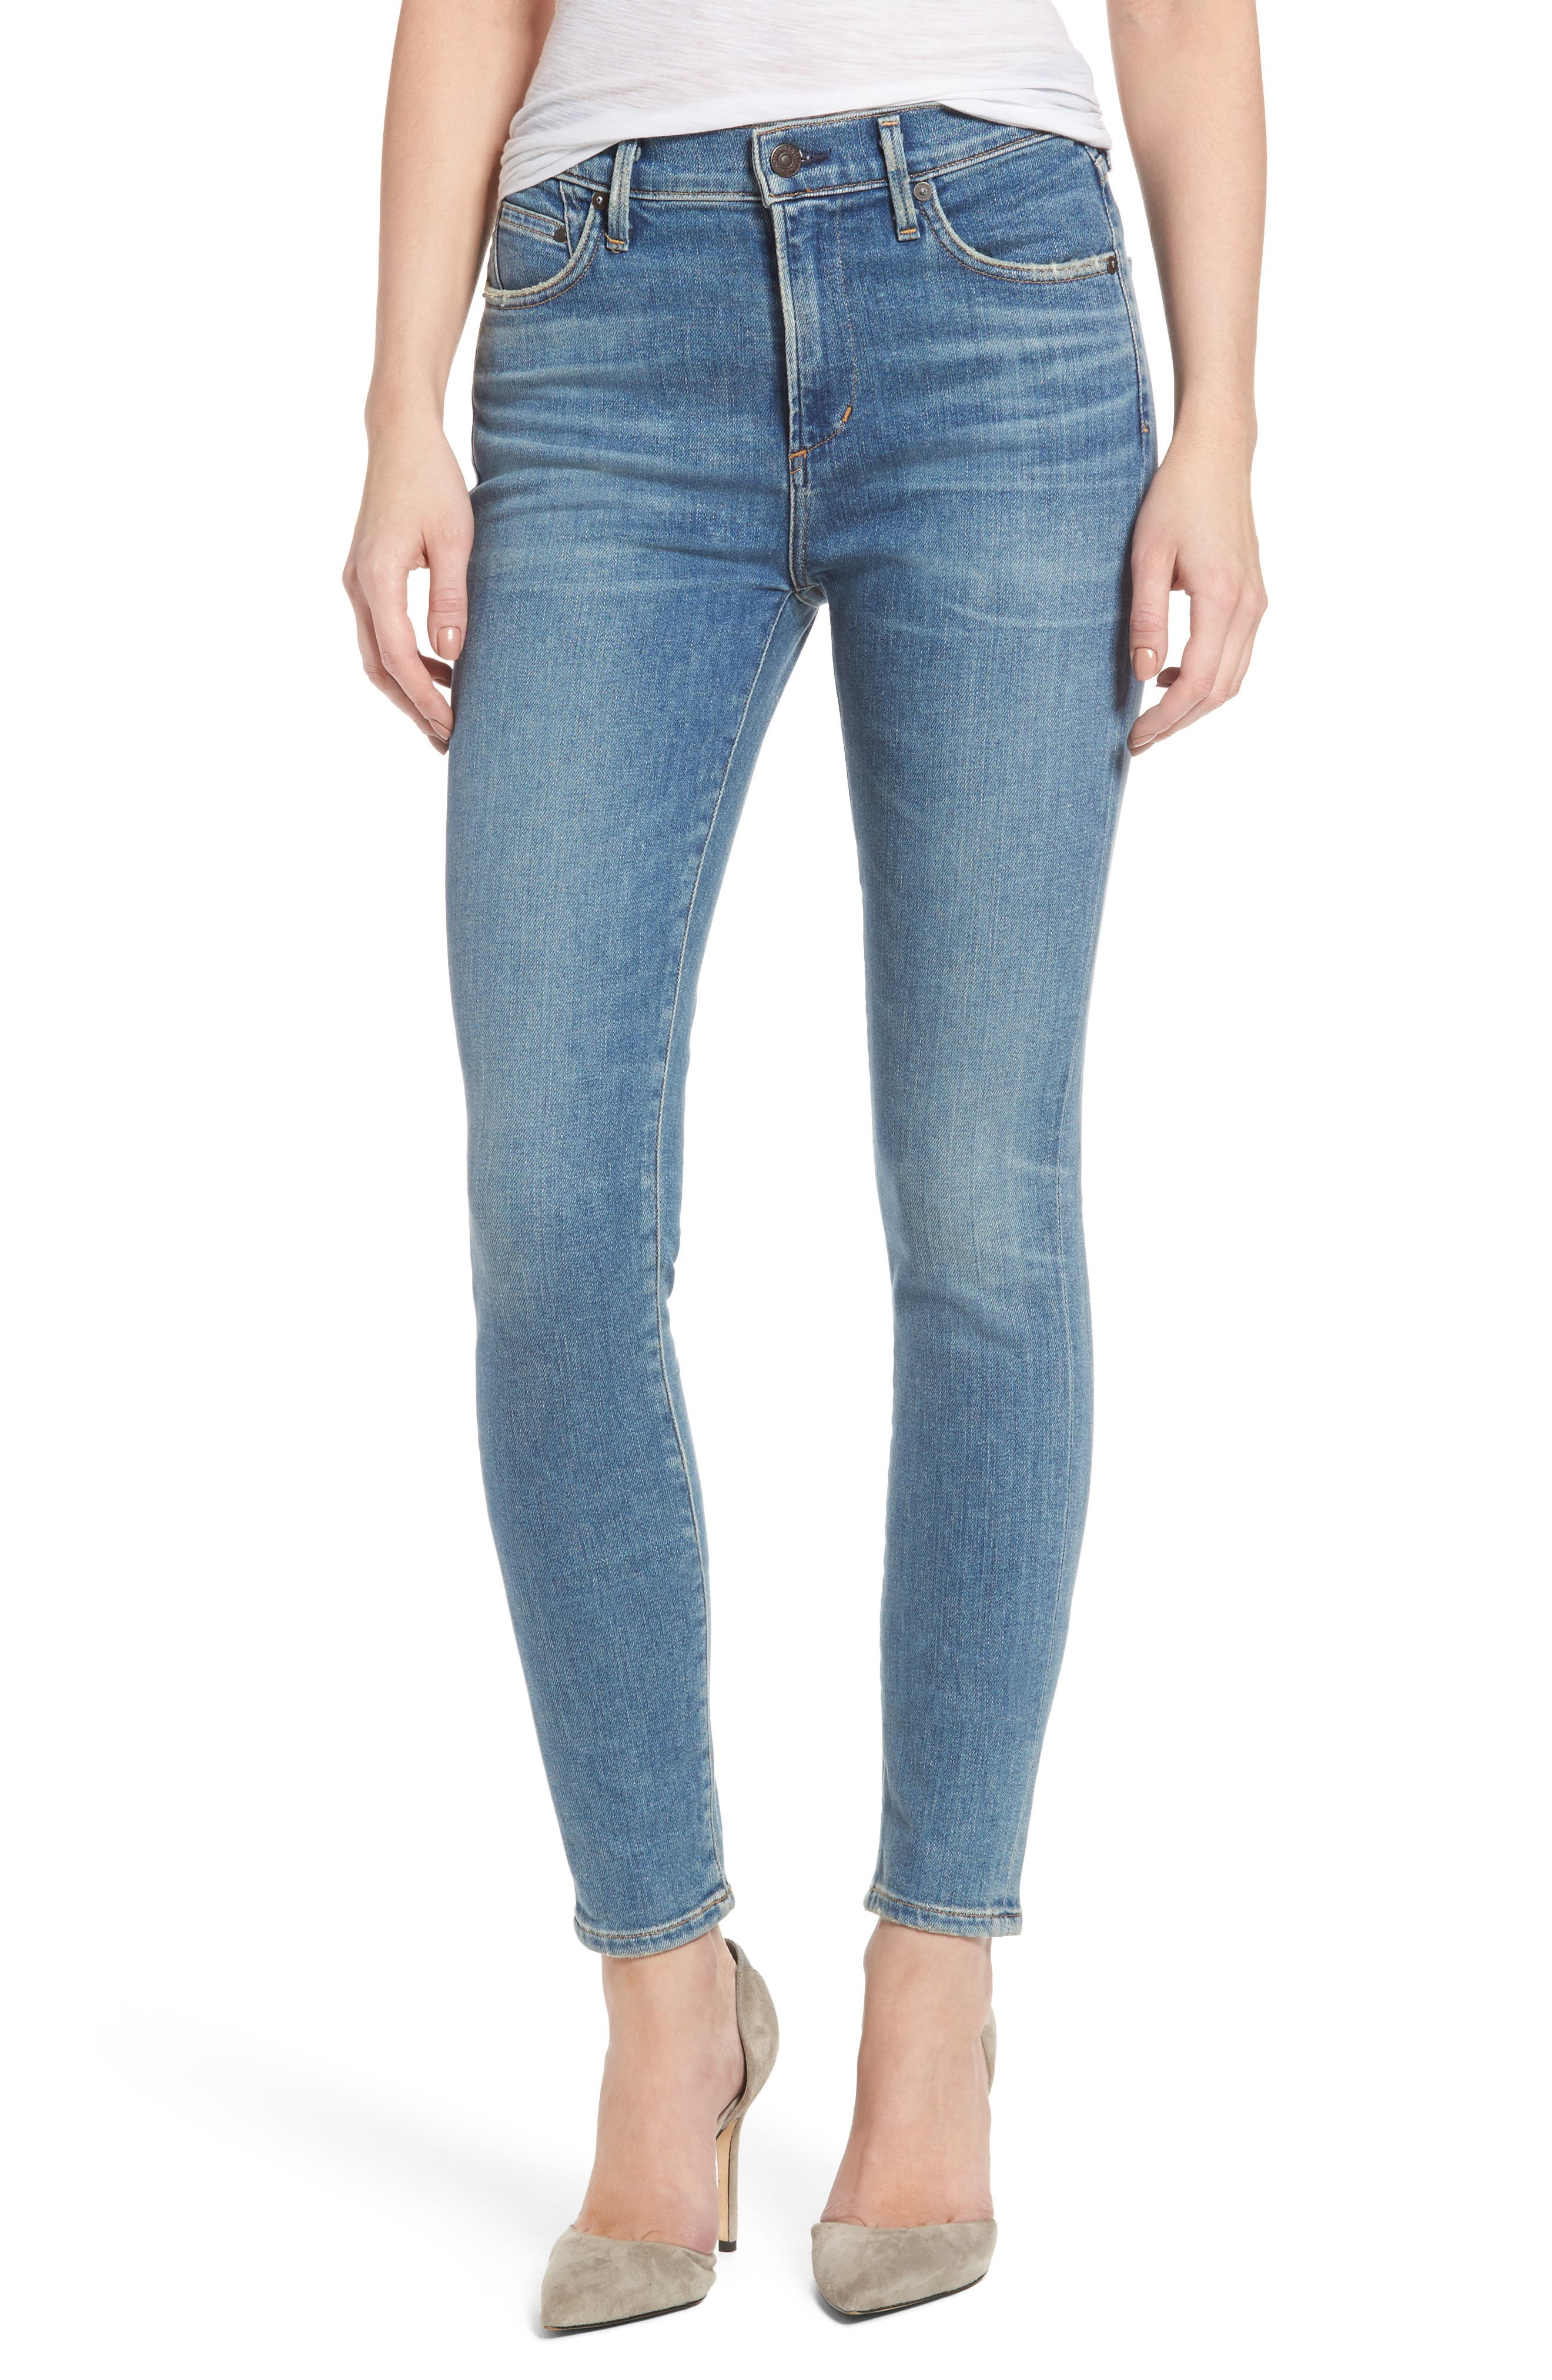 Main Image - Citizens of Humanity Rocket High Waist Skinny Jeans (Reyes)